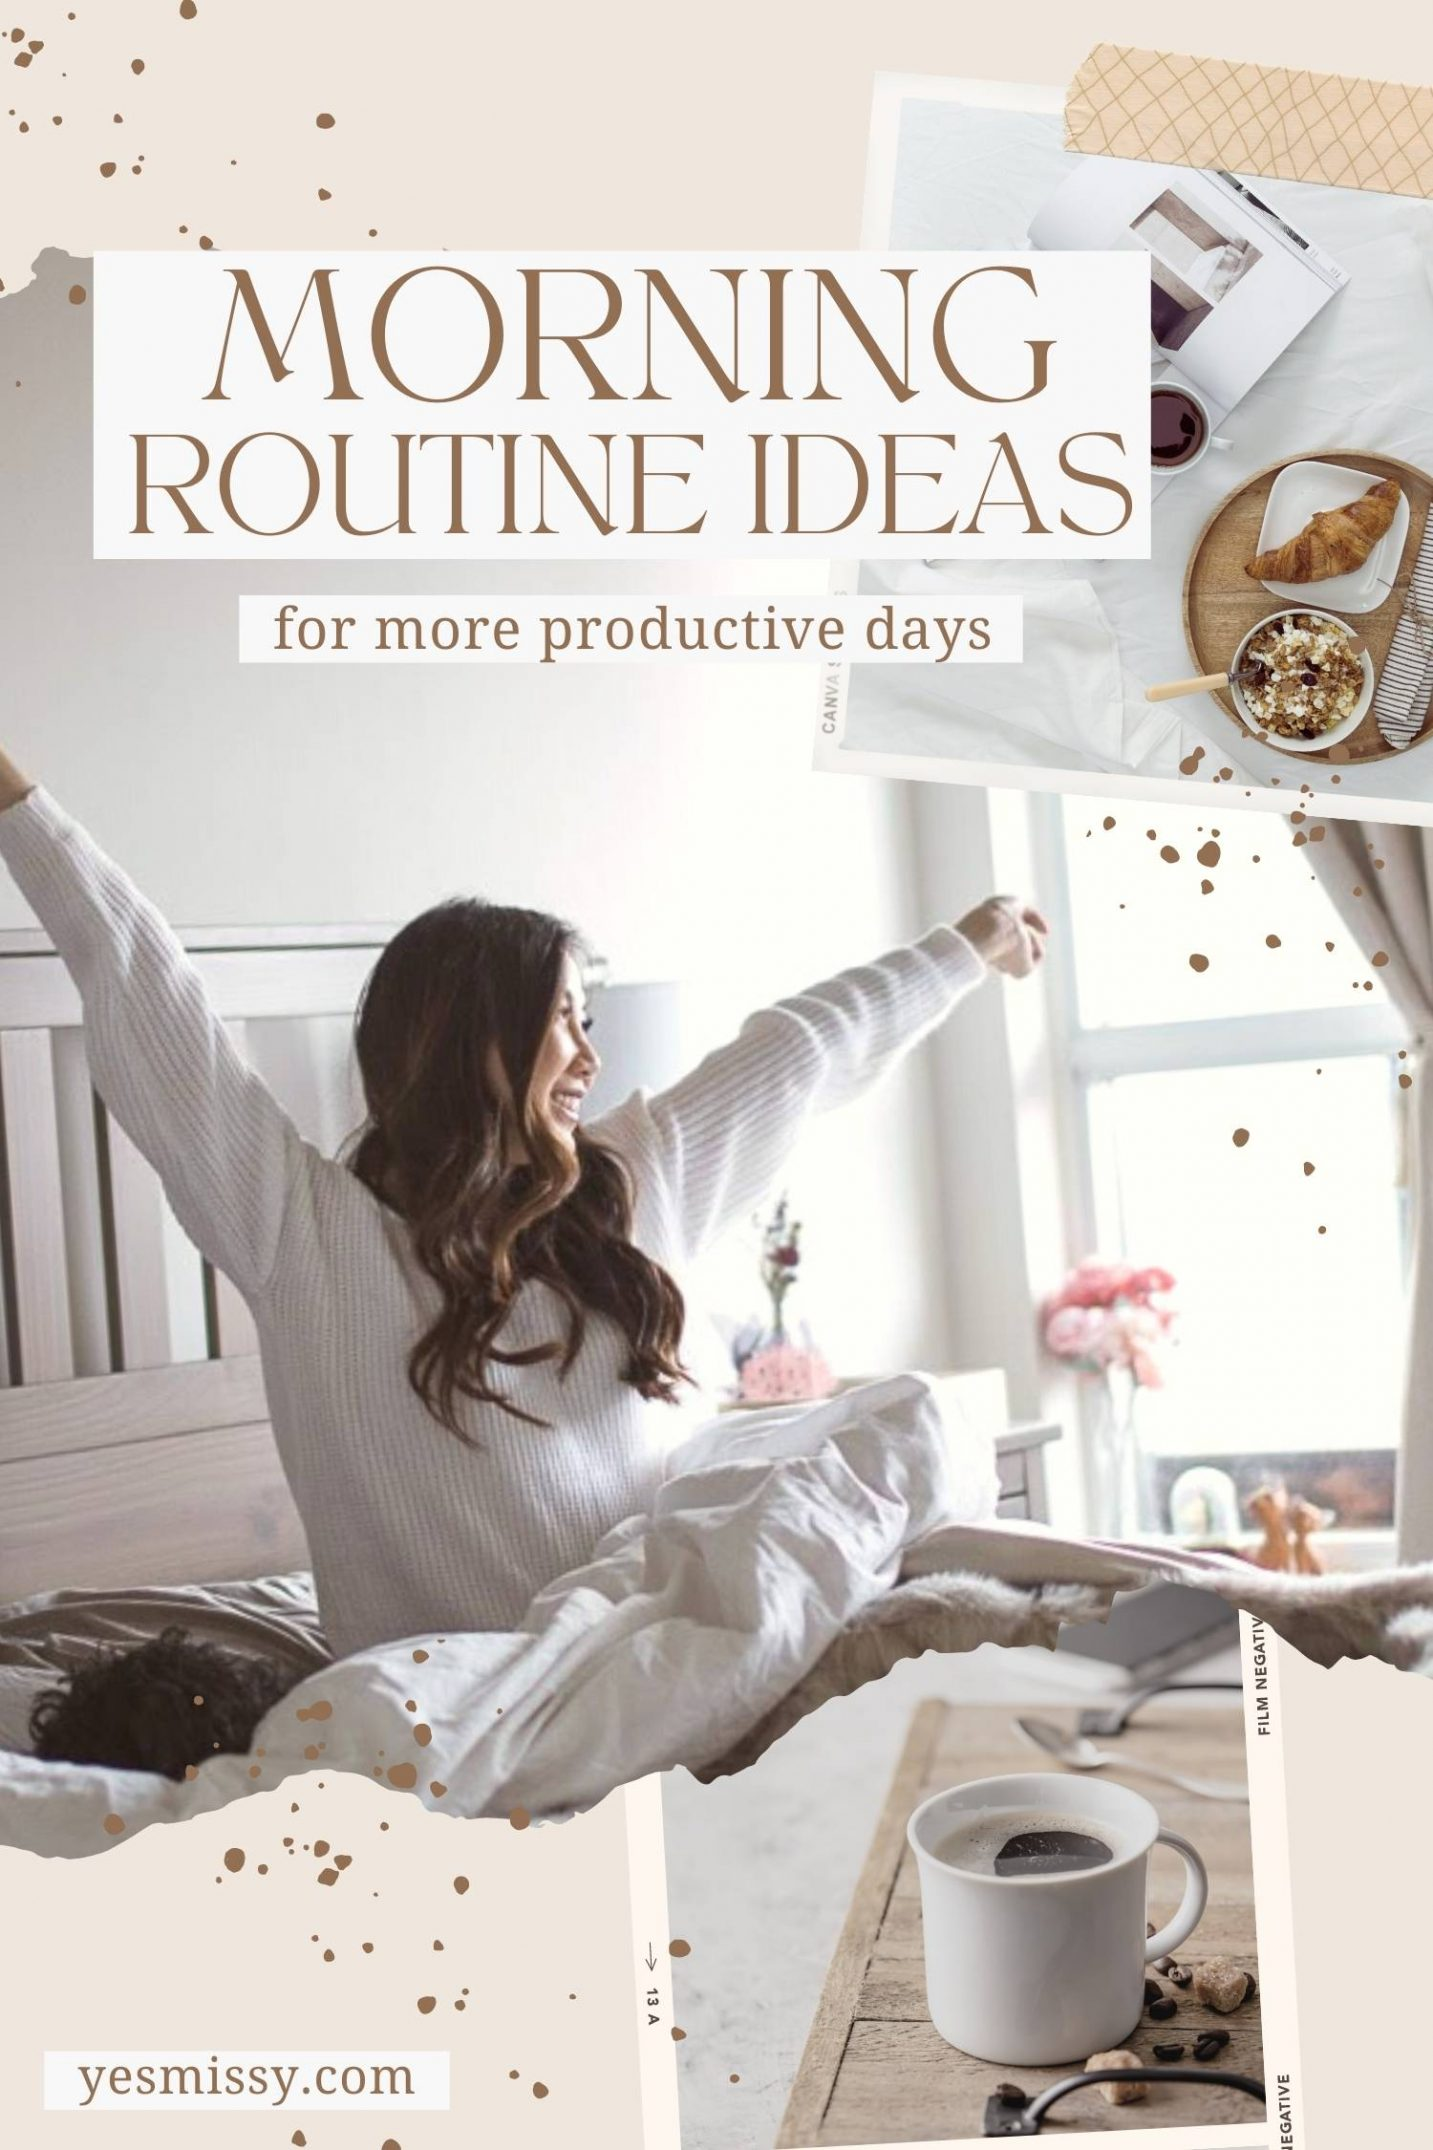 5 habits to make your morning routine better and start your day off right!